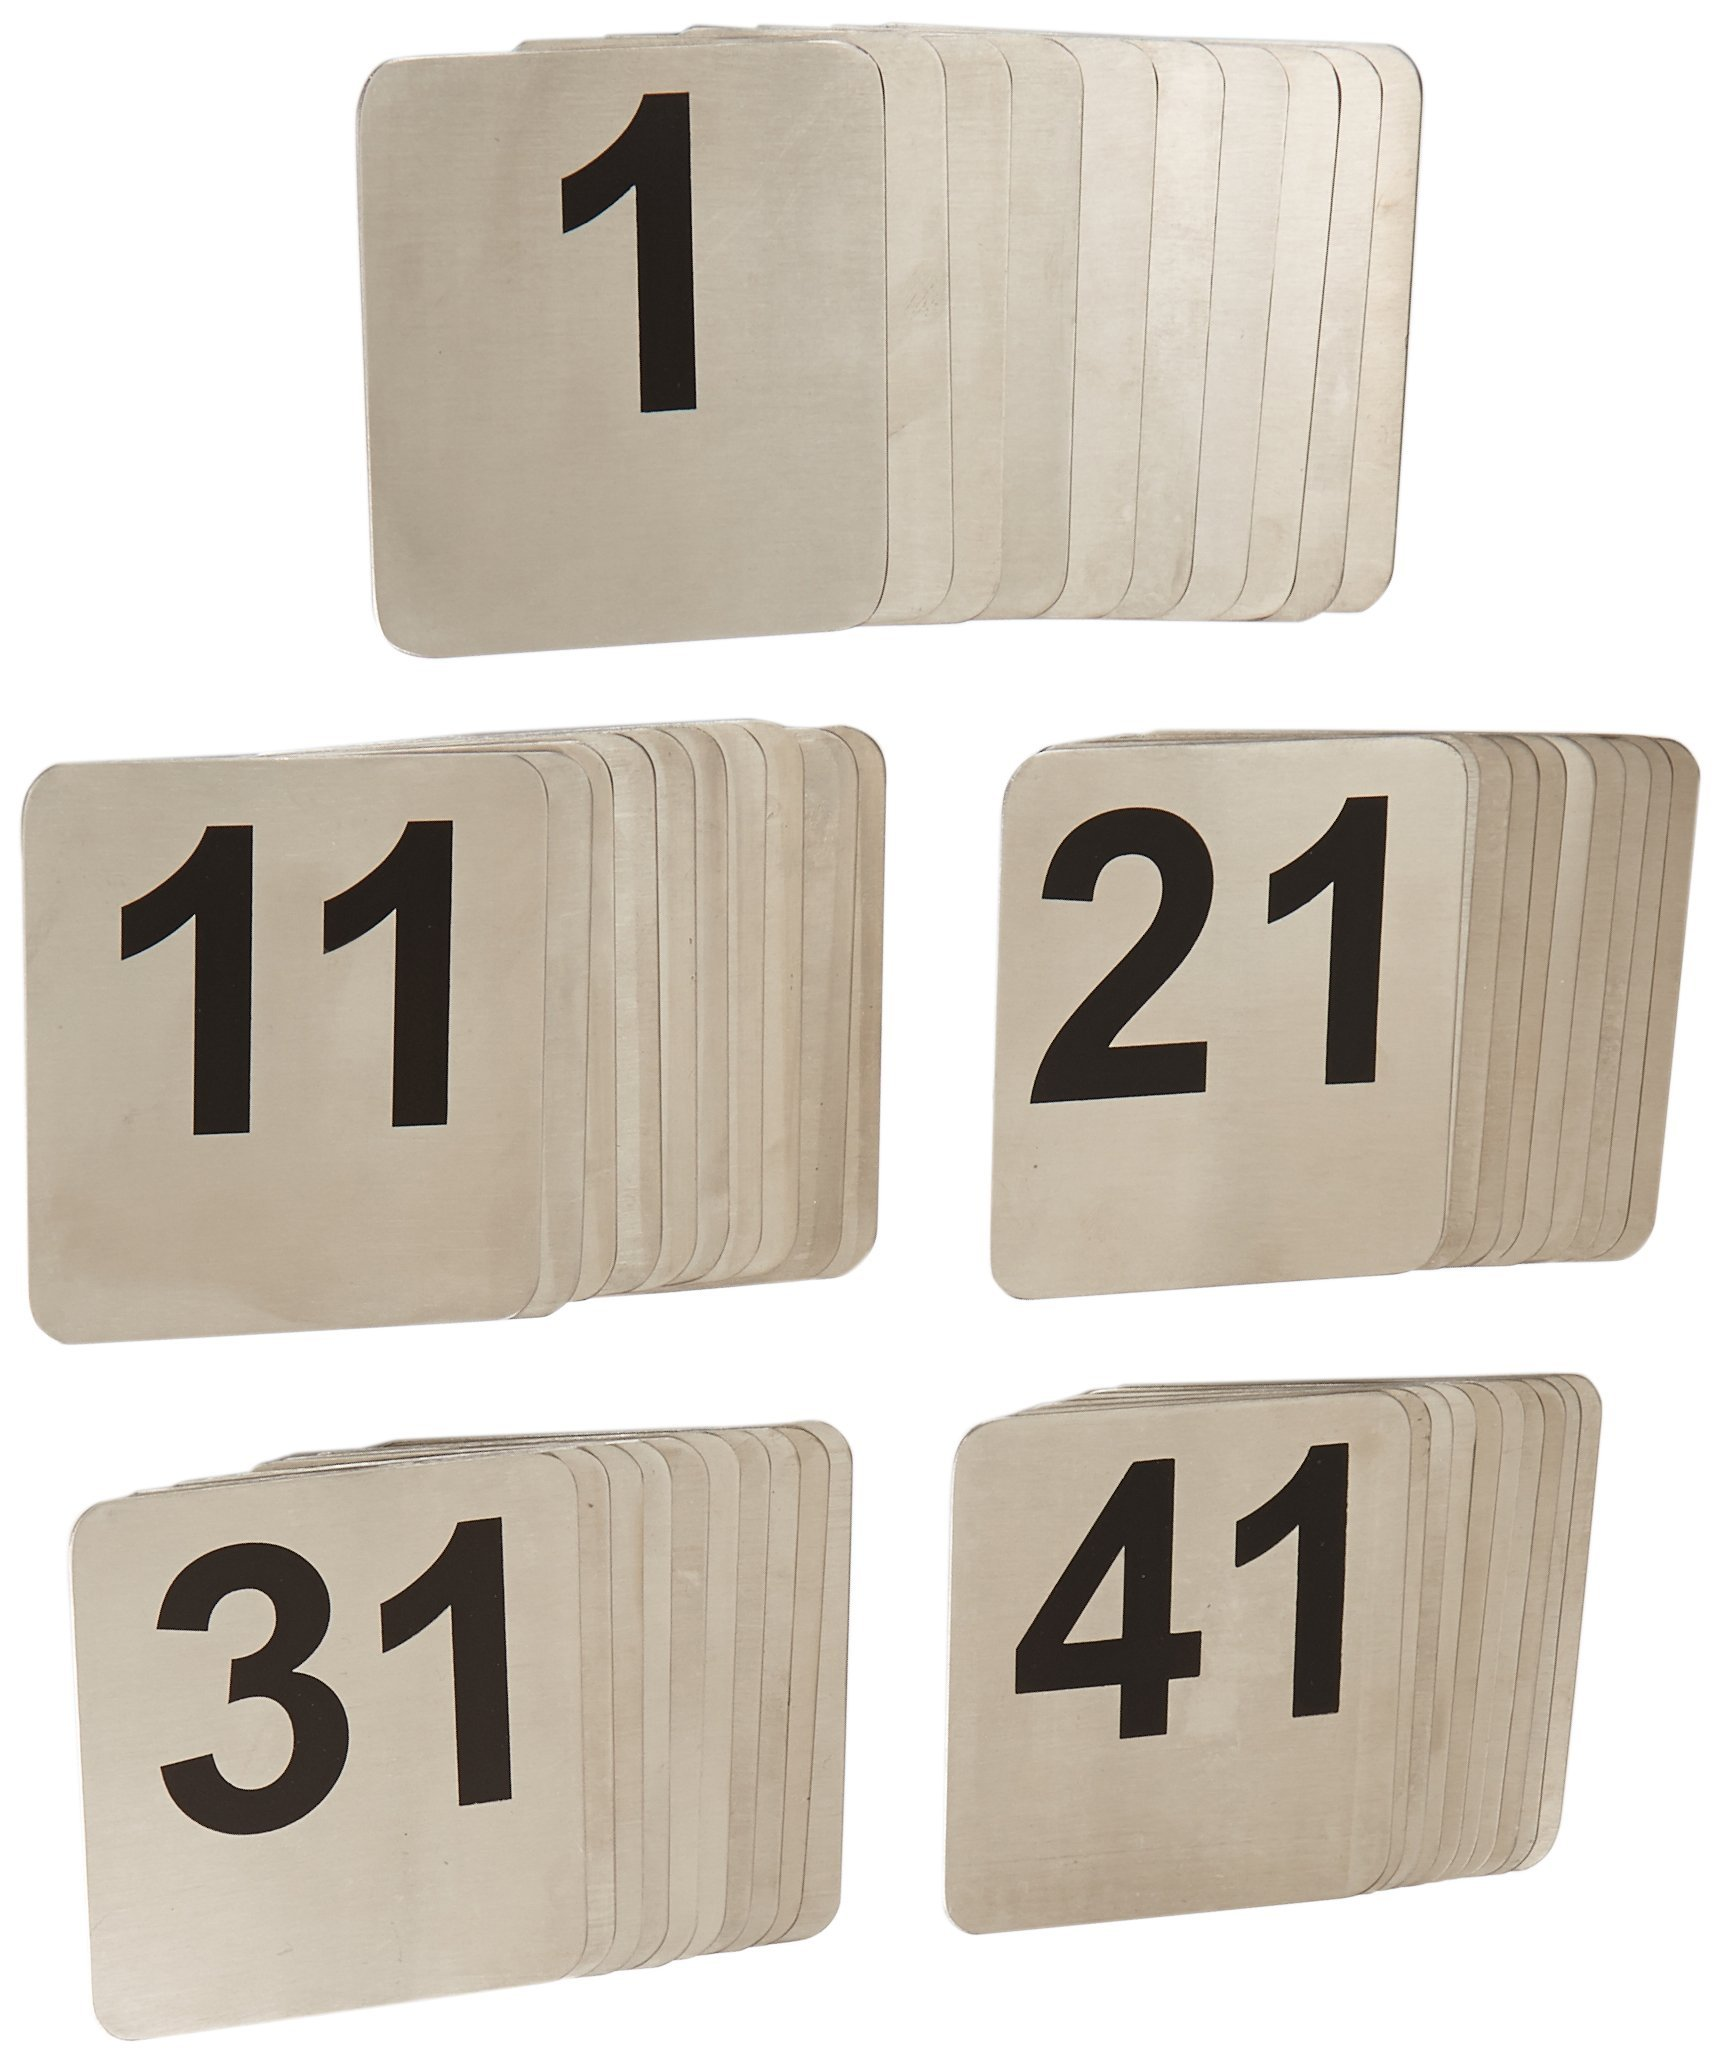 TableCraft Products N150 1-50 Stainless Steel Number Signs